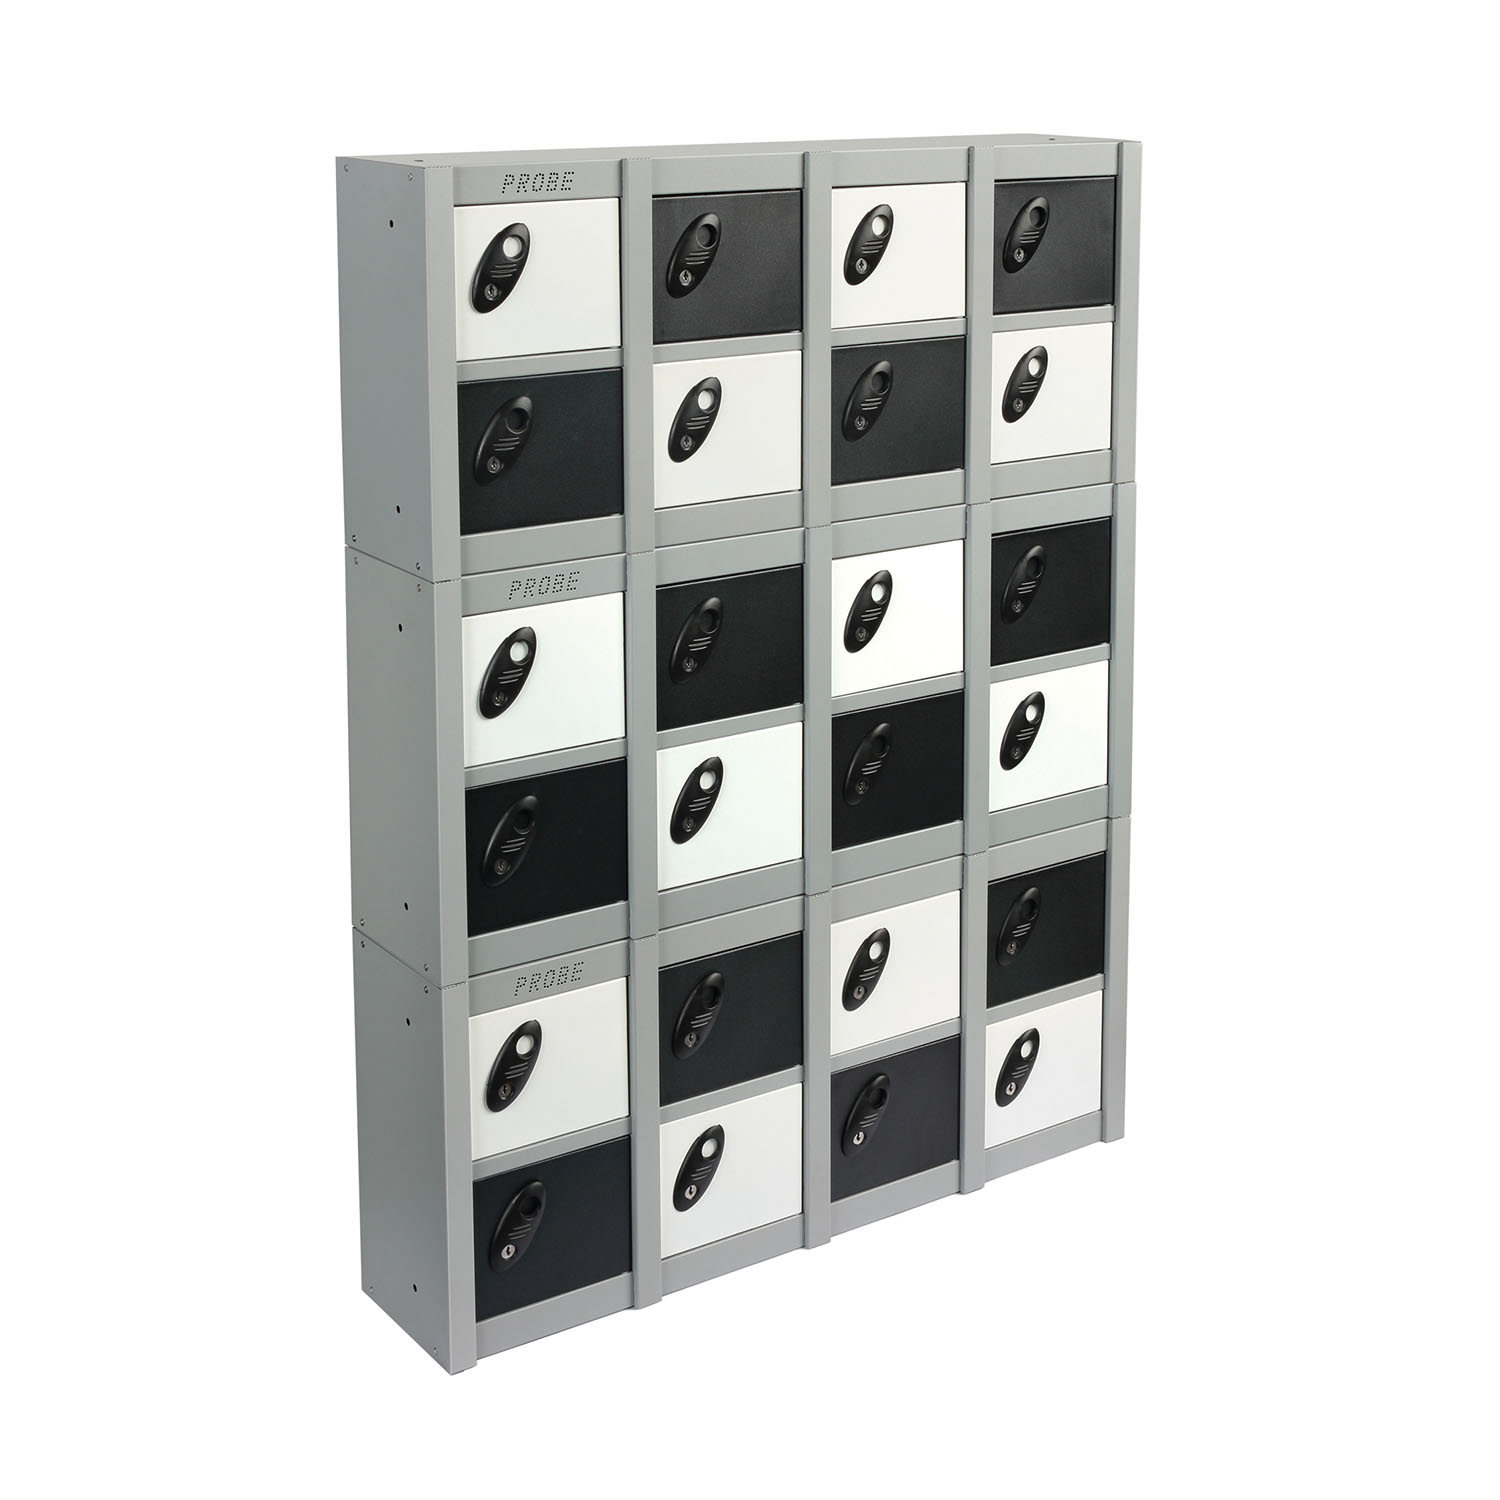 Probe 8 doors minibox wall mounted lockers in black and white colour